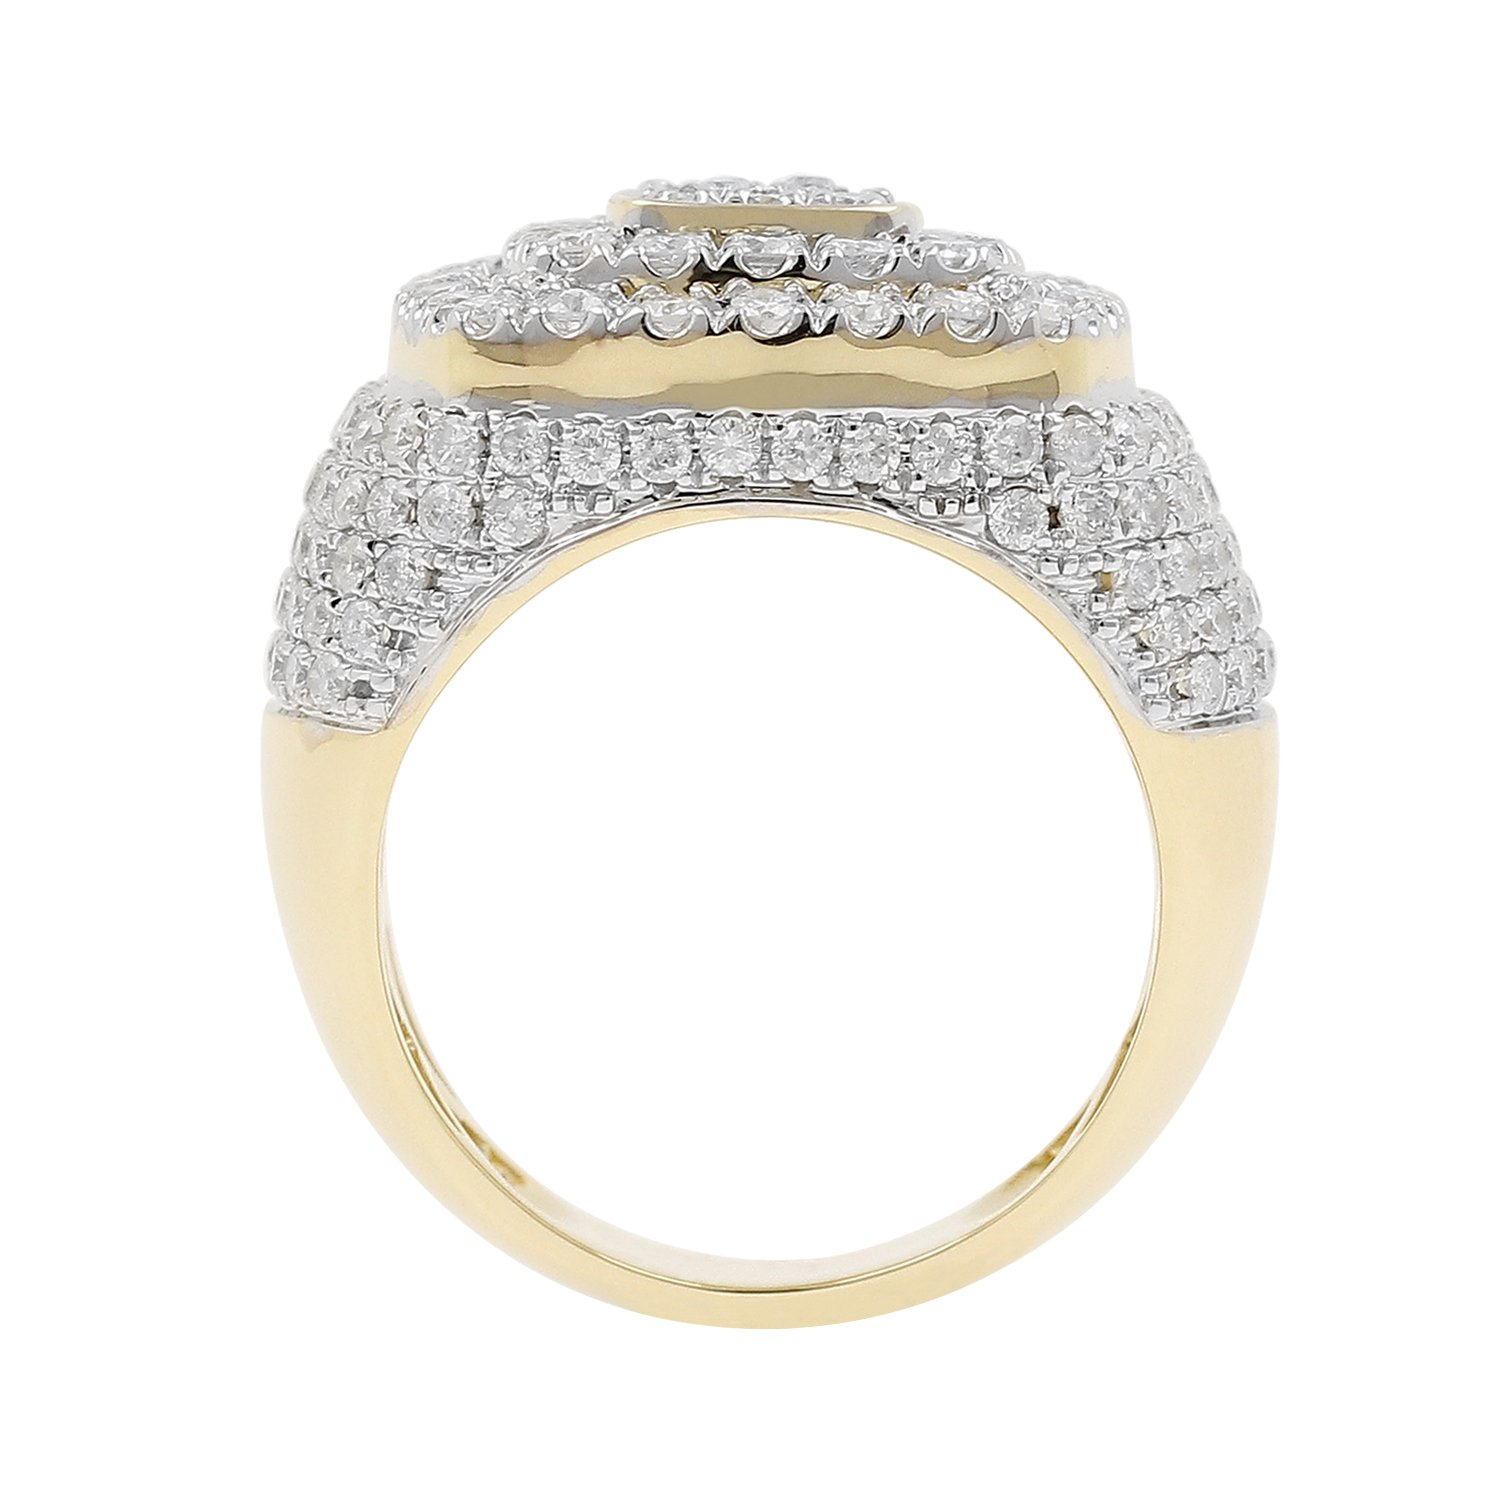 4.15 Carat 10kt Yellow Gold Diamond Cluster Men's Statement Pinky Ring by Isha Luxe-Mens Collection (Image #3)